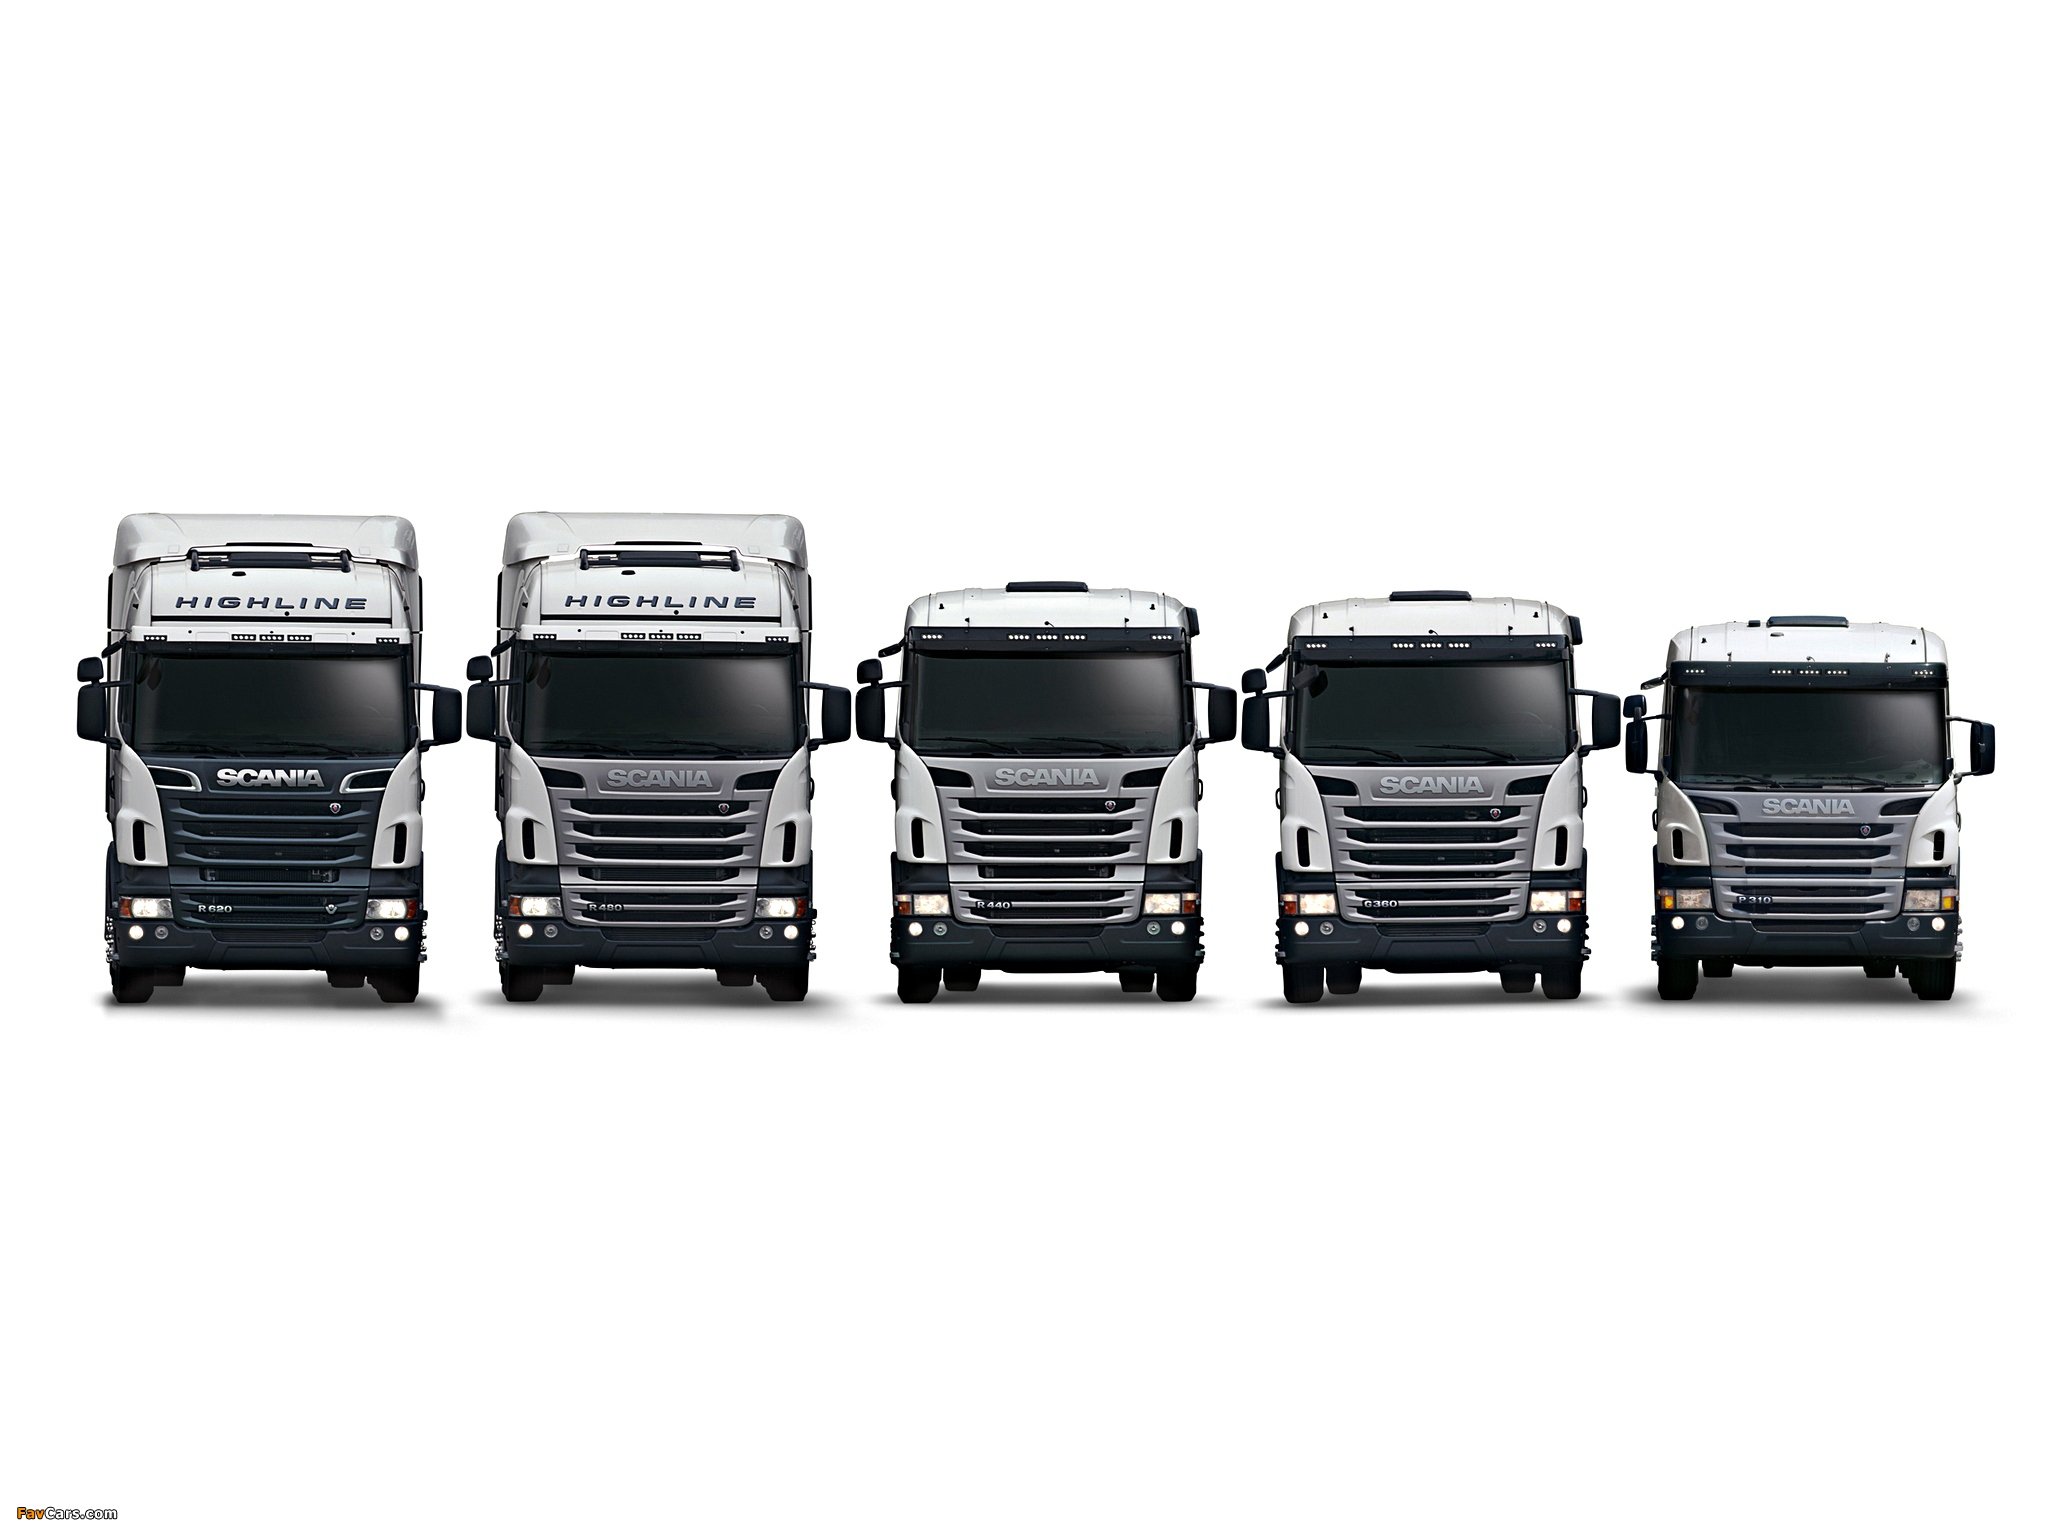 Scania wallpapers (2048 x 1536)